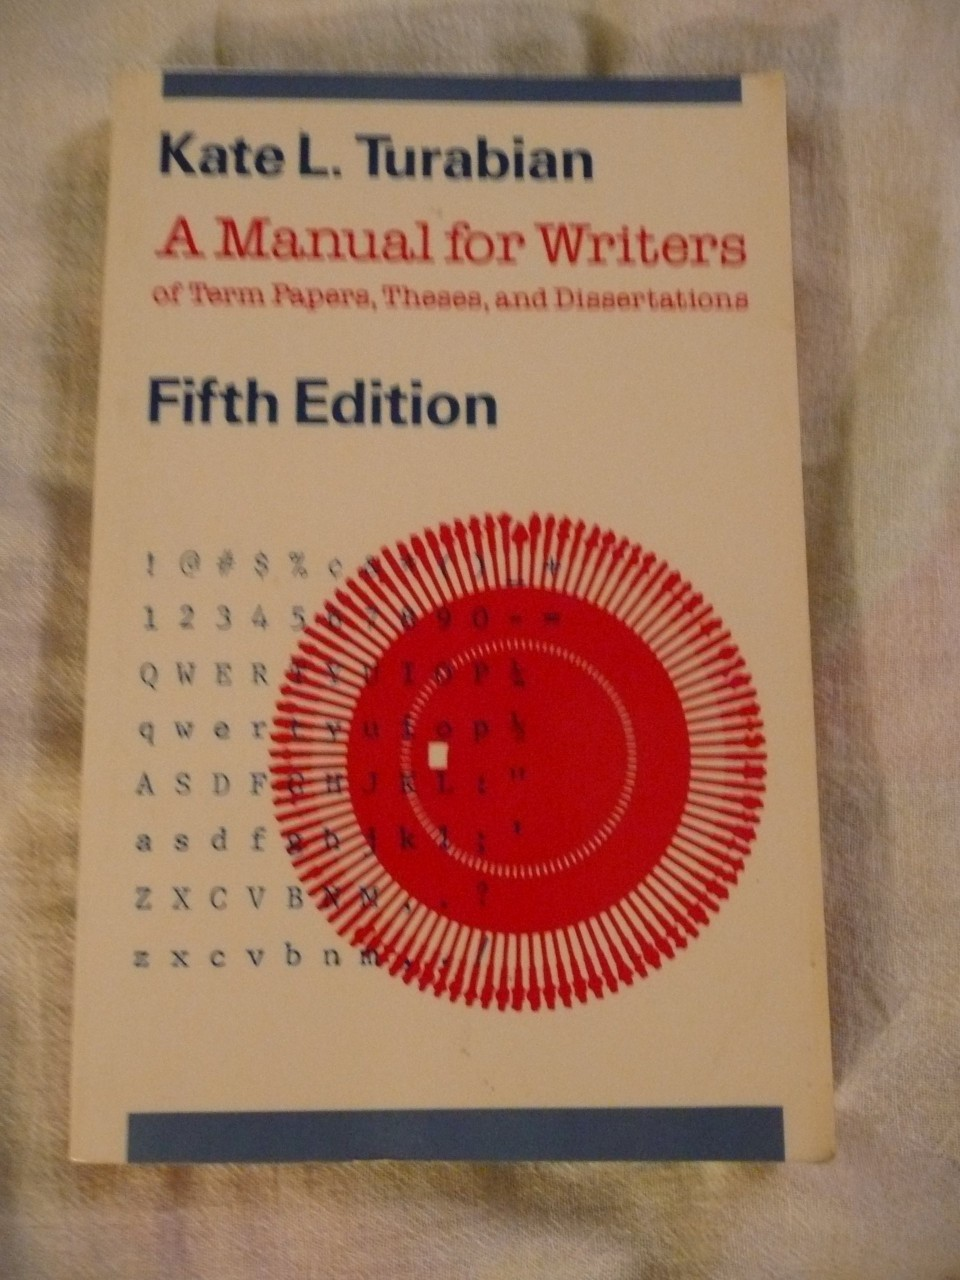 020 91nltv7olql Research Paper Manual For Writers Of Papers Theses And Sensational A Dissertations Ed. 8 8th Edition Ninth Pdf 960